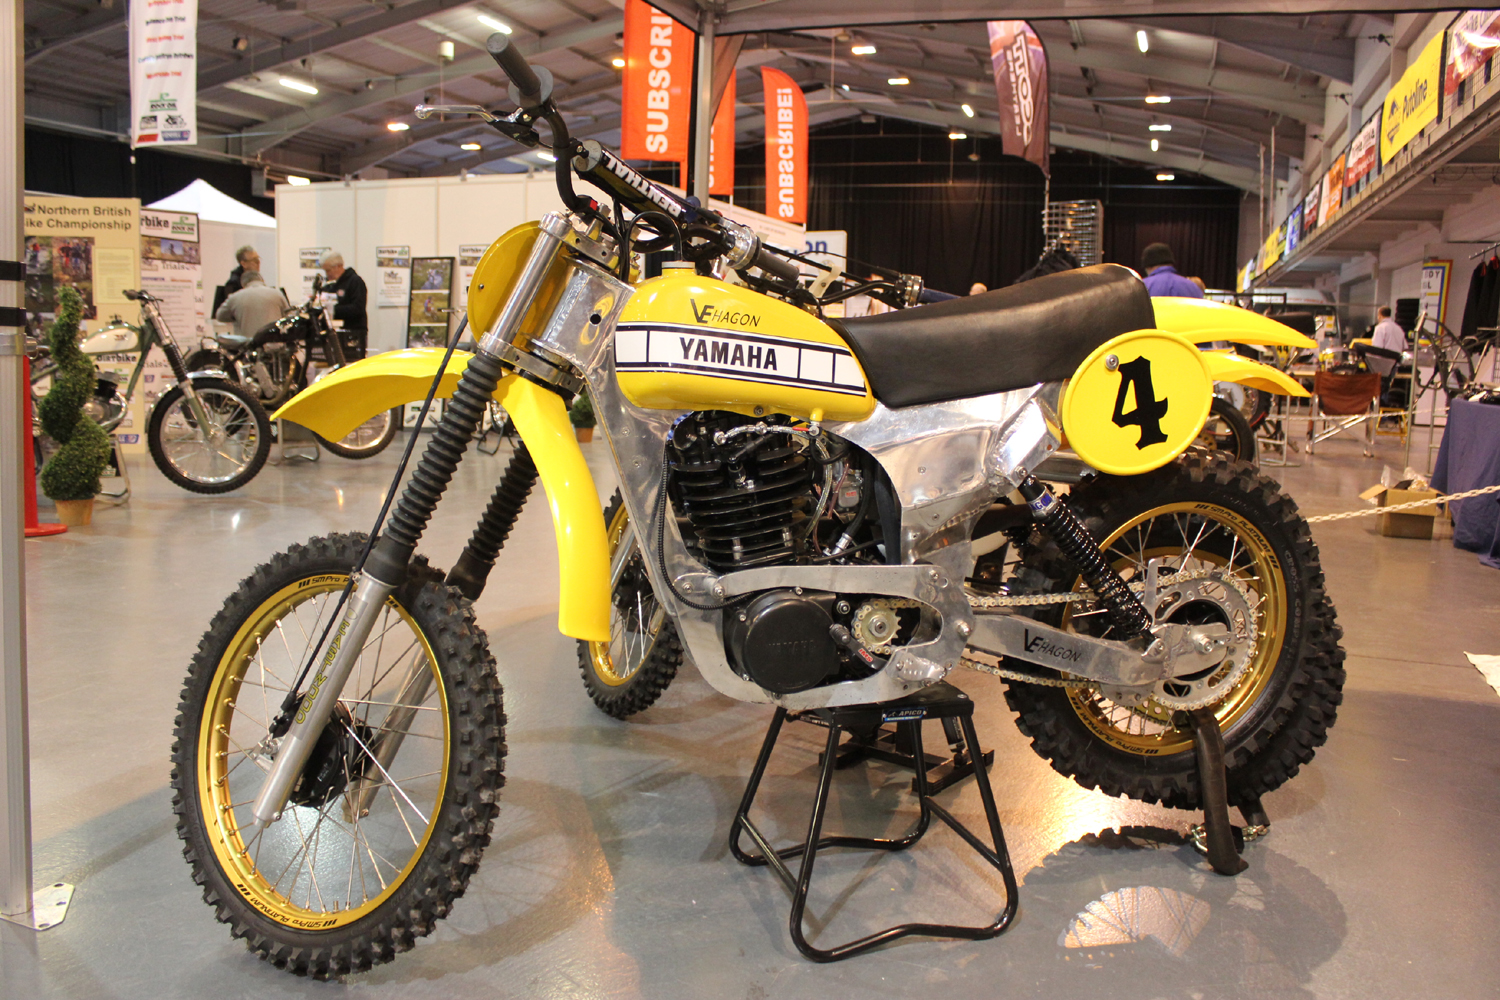 classicdirtbikerider.com-photo by Mr J-2015 Telford classic dirt bike show-VE HAGON FRAMED YAMAHA TWINSHOCK MOTOCROSS BIKE